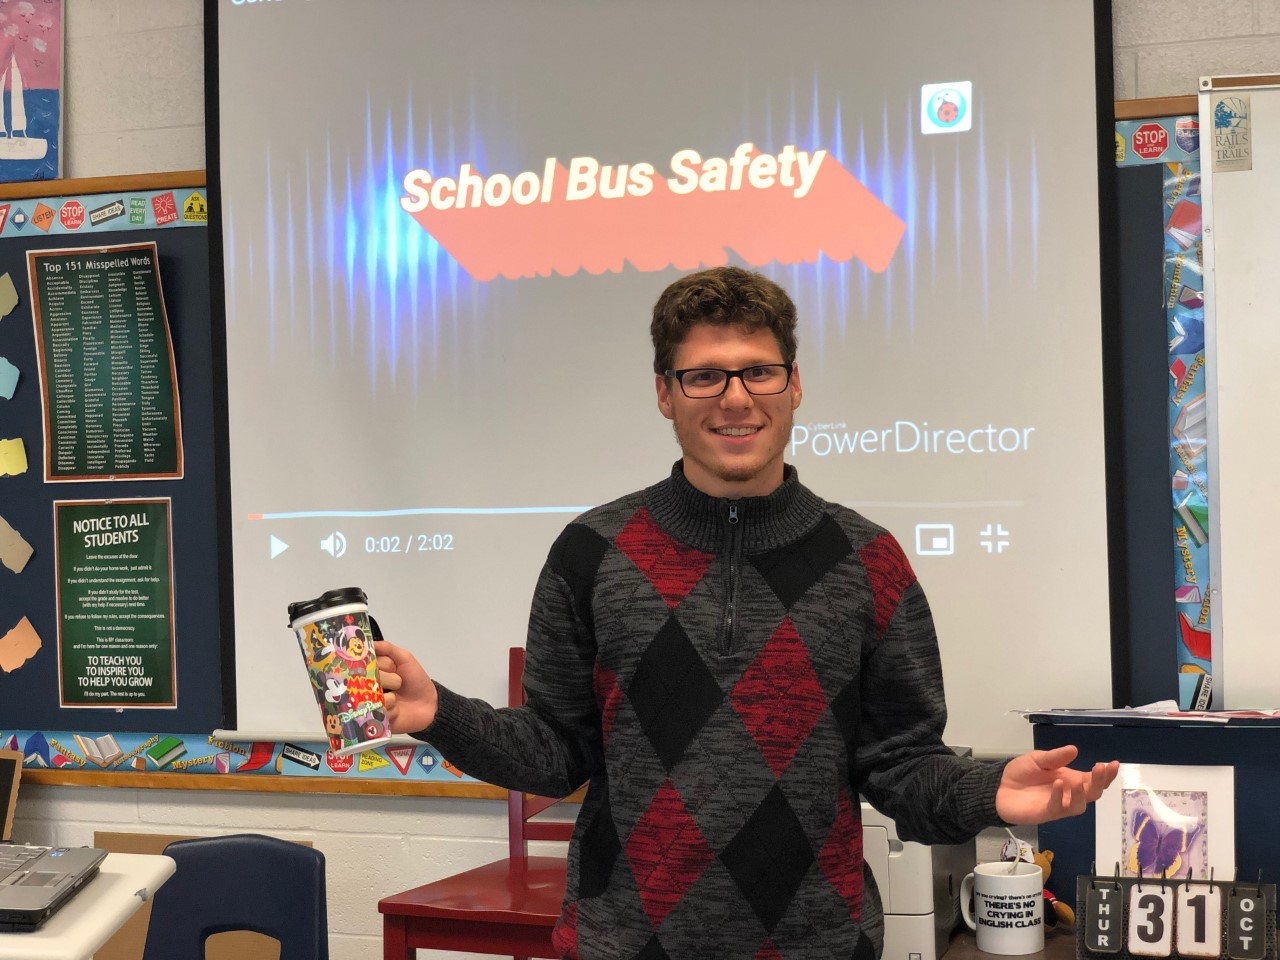 Jacob Presenting his PSA on School Bus Safety